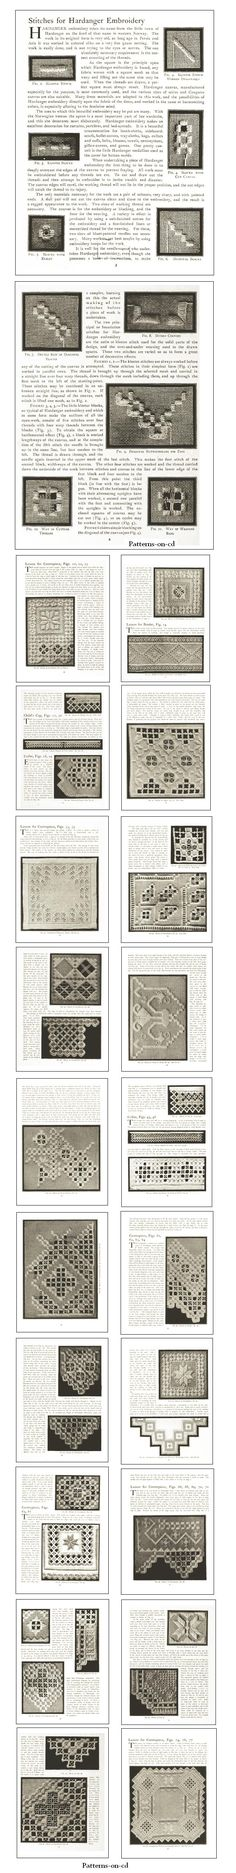 CD ROM Title:  Priscilla Hardanger, 1909     With instructions of the various hardanger embroidery stitches and lessons   for how to create designs for centerpieces, table cloths, Doily, collar and cuffs. Click on the image for more description about this CD title.